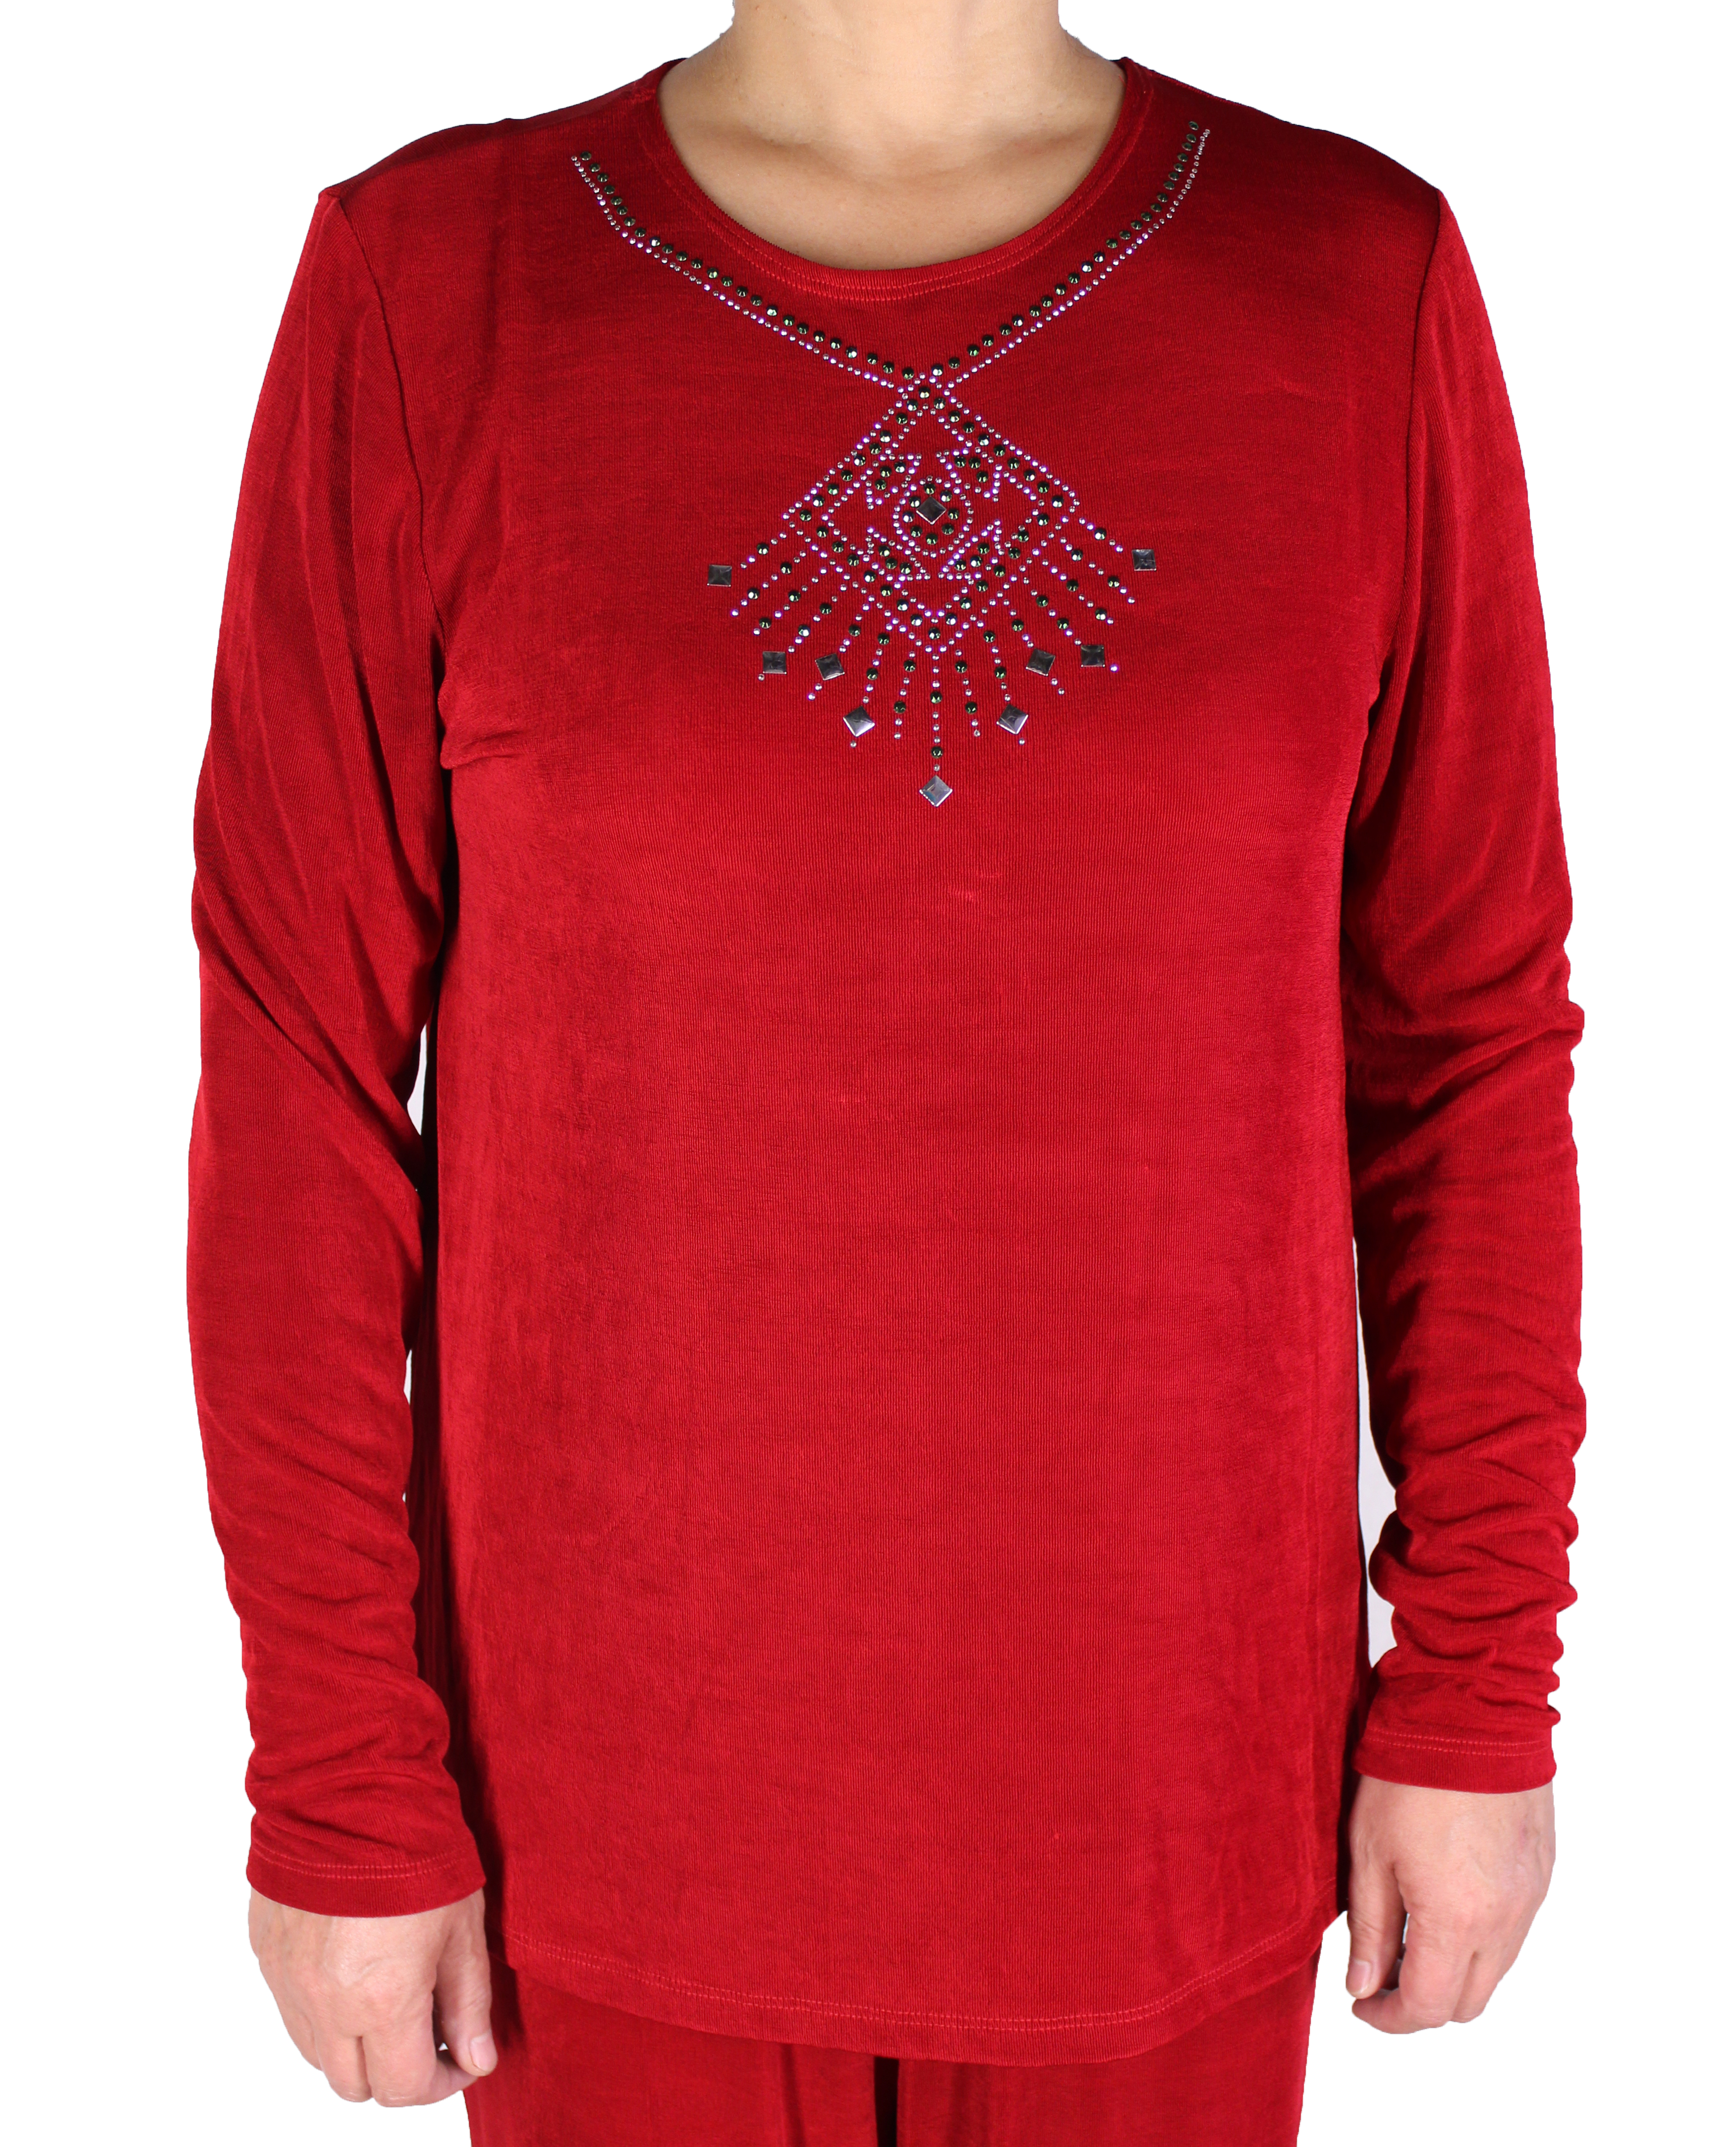 Women Slinky Jewel Neck Tunic Long Sleeve Top (016-3S)